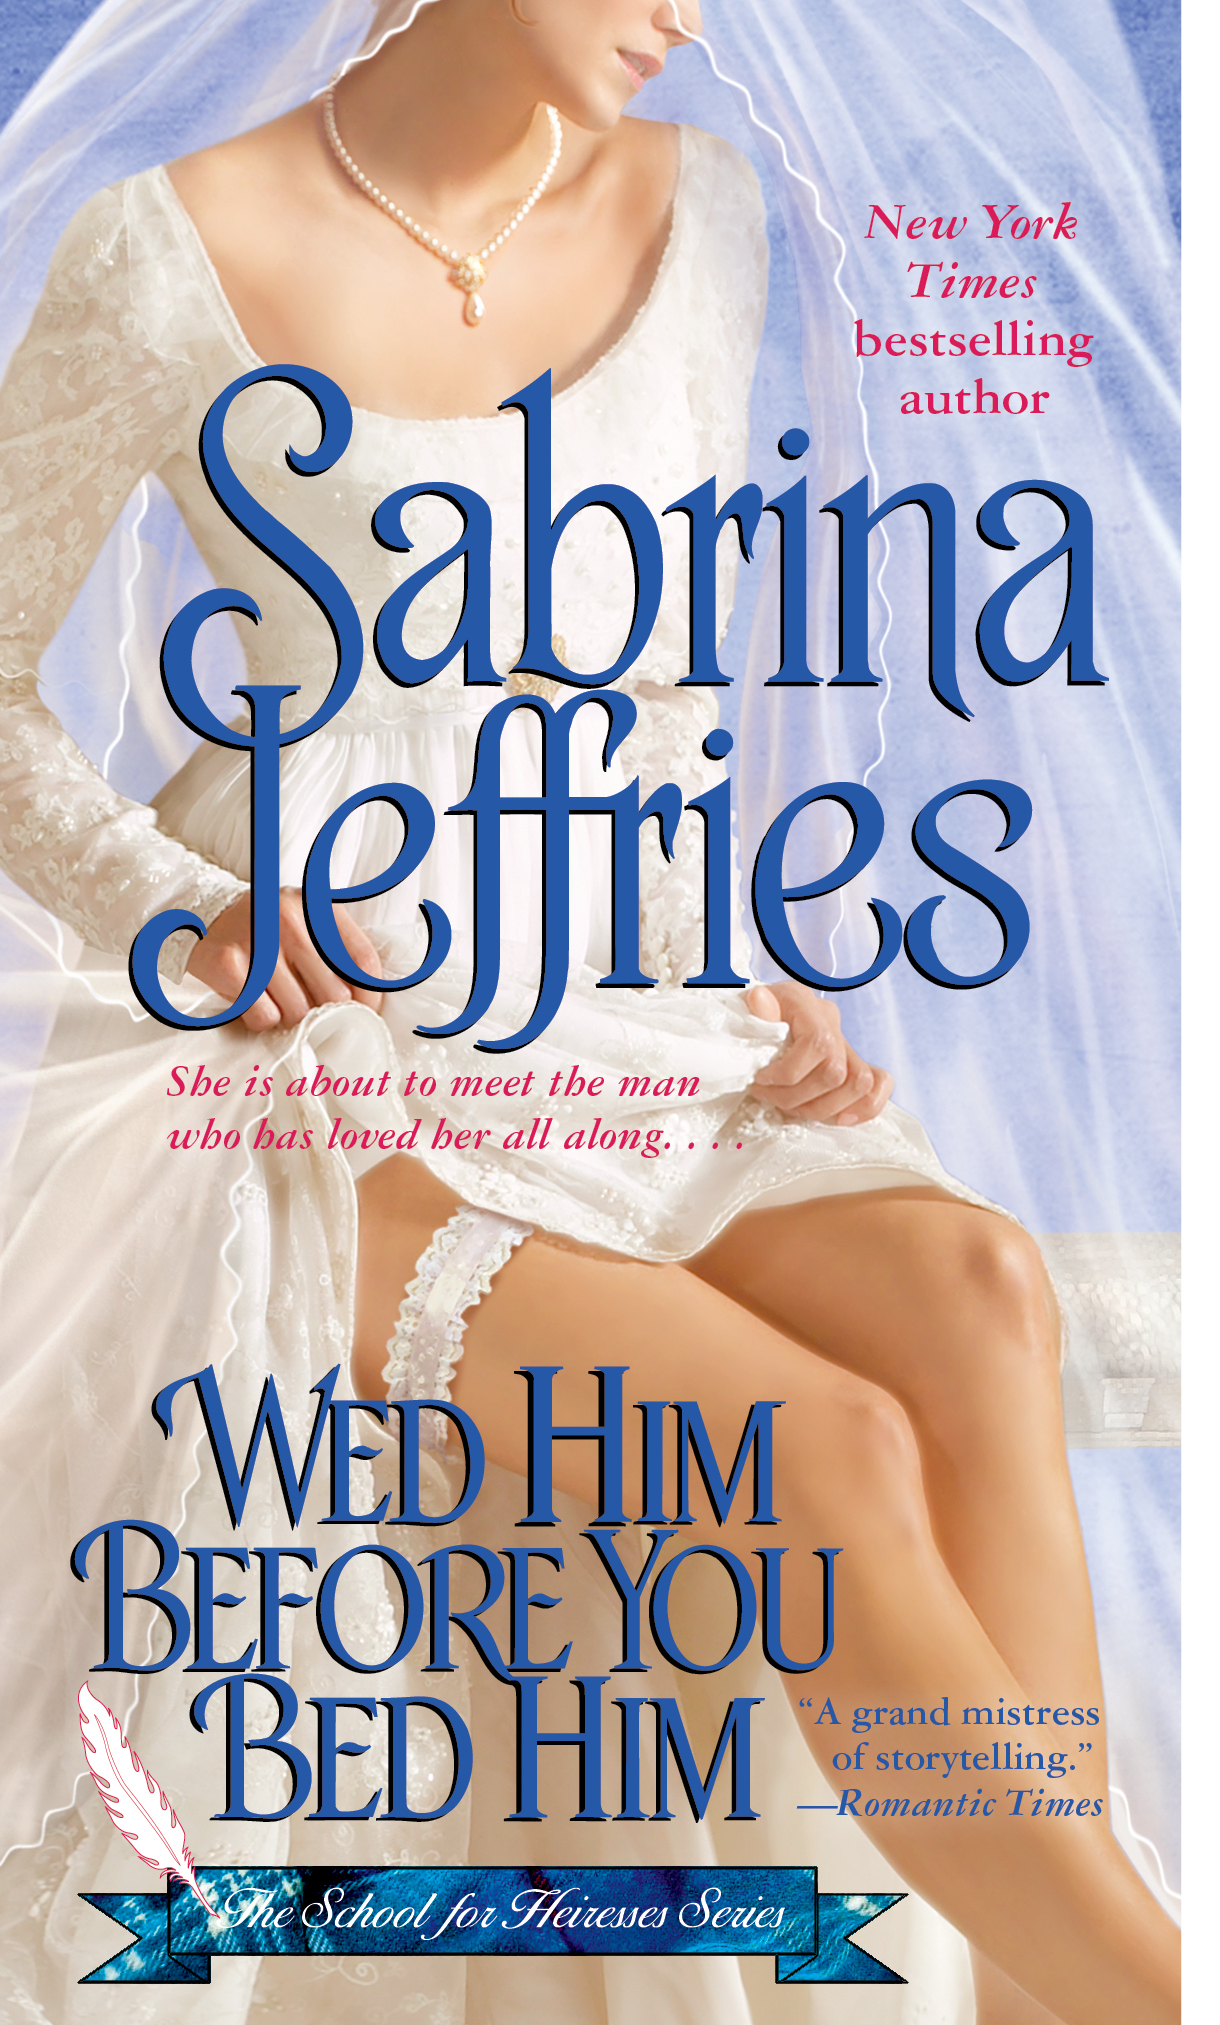 Wed him before you bed him book by sabrina jeffries official cvr9781416560821 9781416560821 hr wed him before you bed him fandeluxe PDF